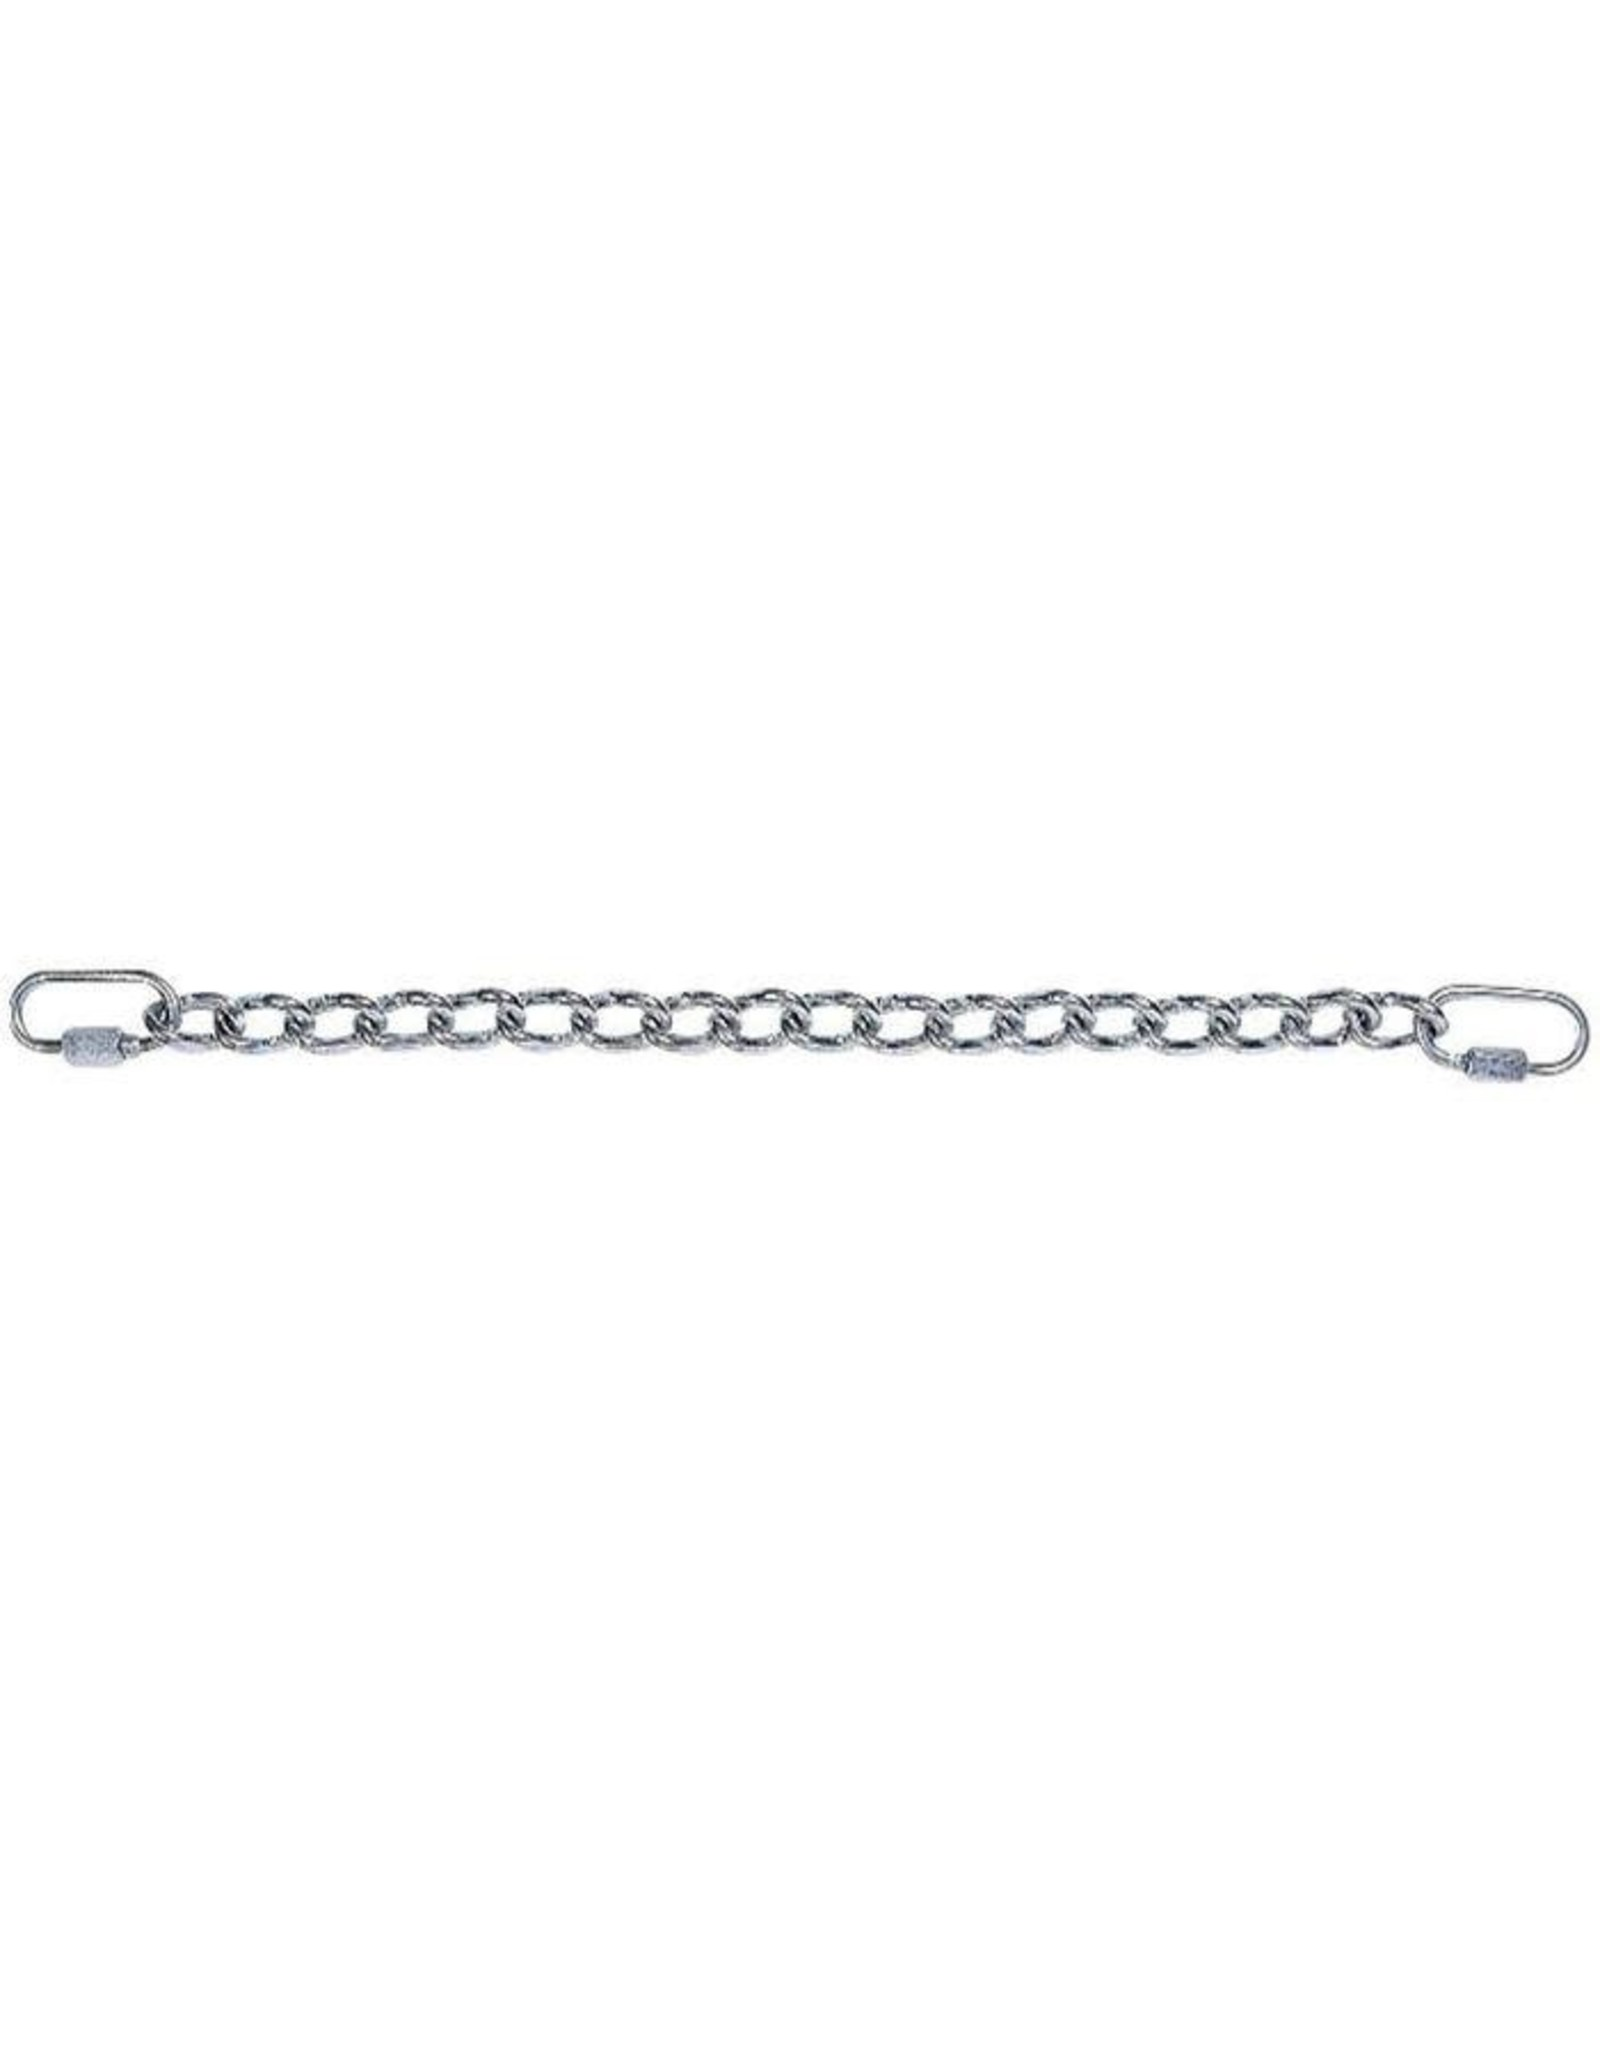 50112A  Quick Link Curb Chain